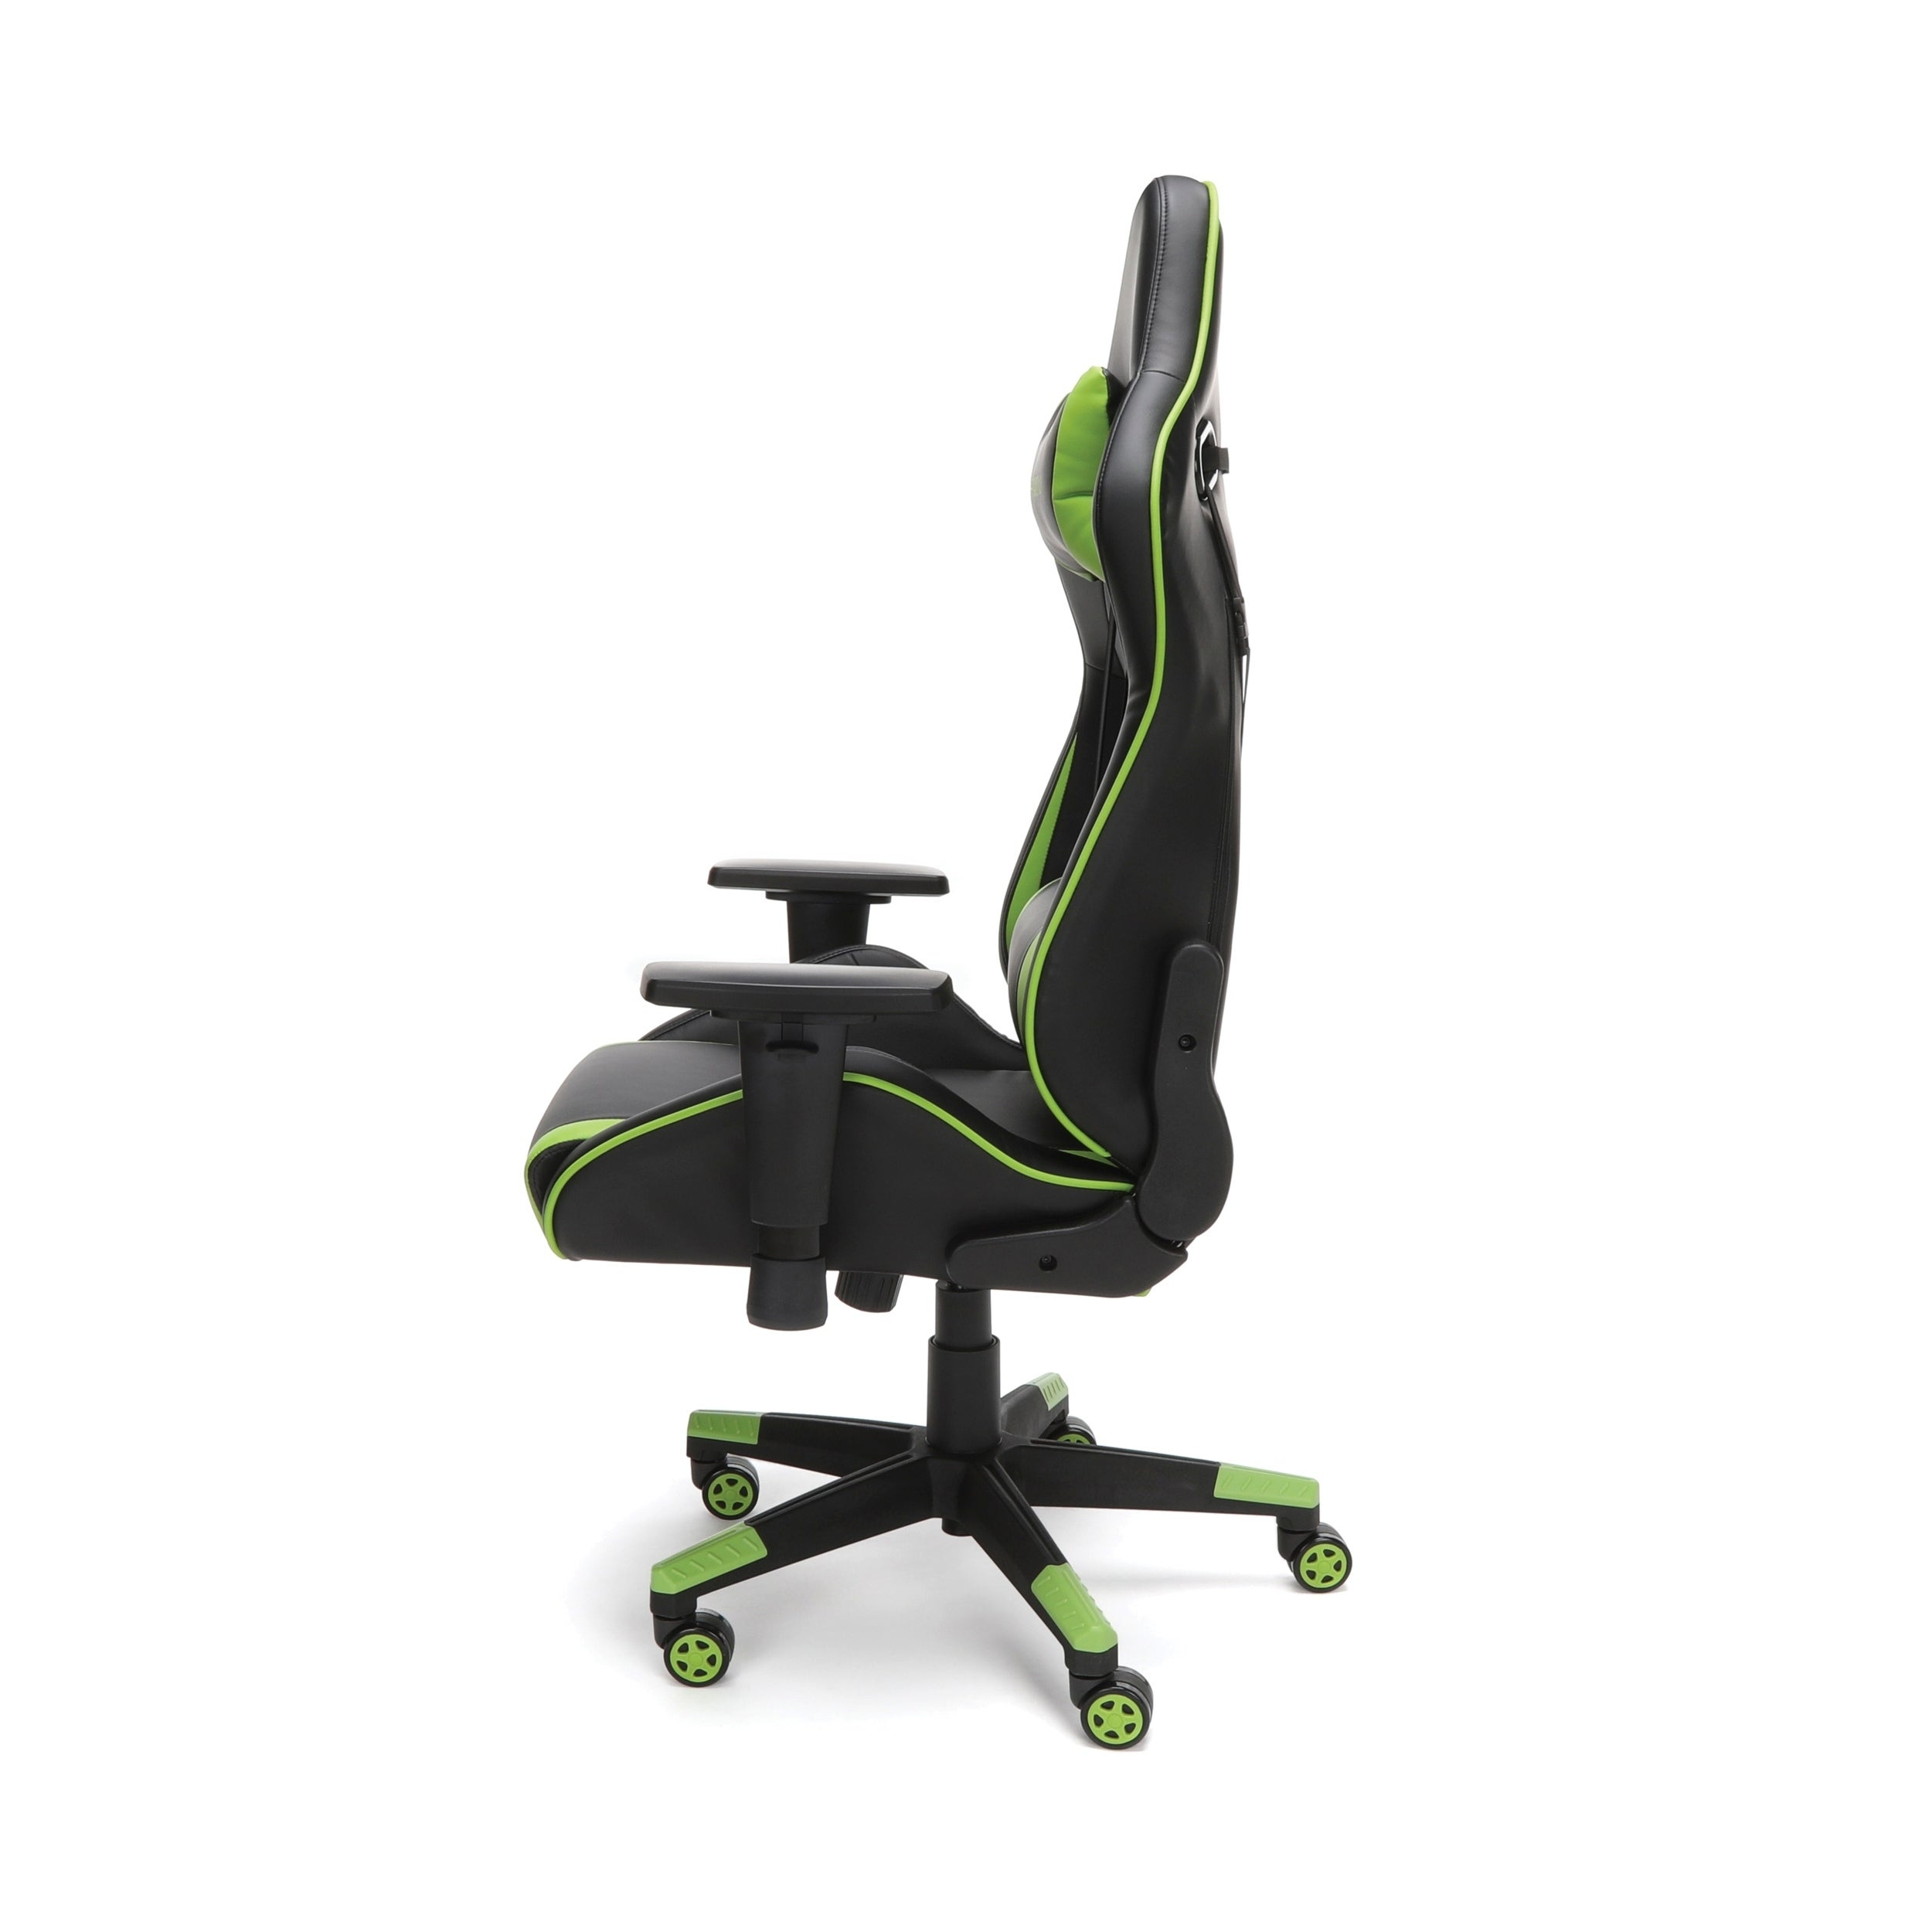 Respawn 120 Racing Style Gaming Chair Reclining Ergonomic Leather Chair Office Or Gaming Chair Rsp 120